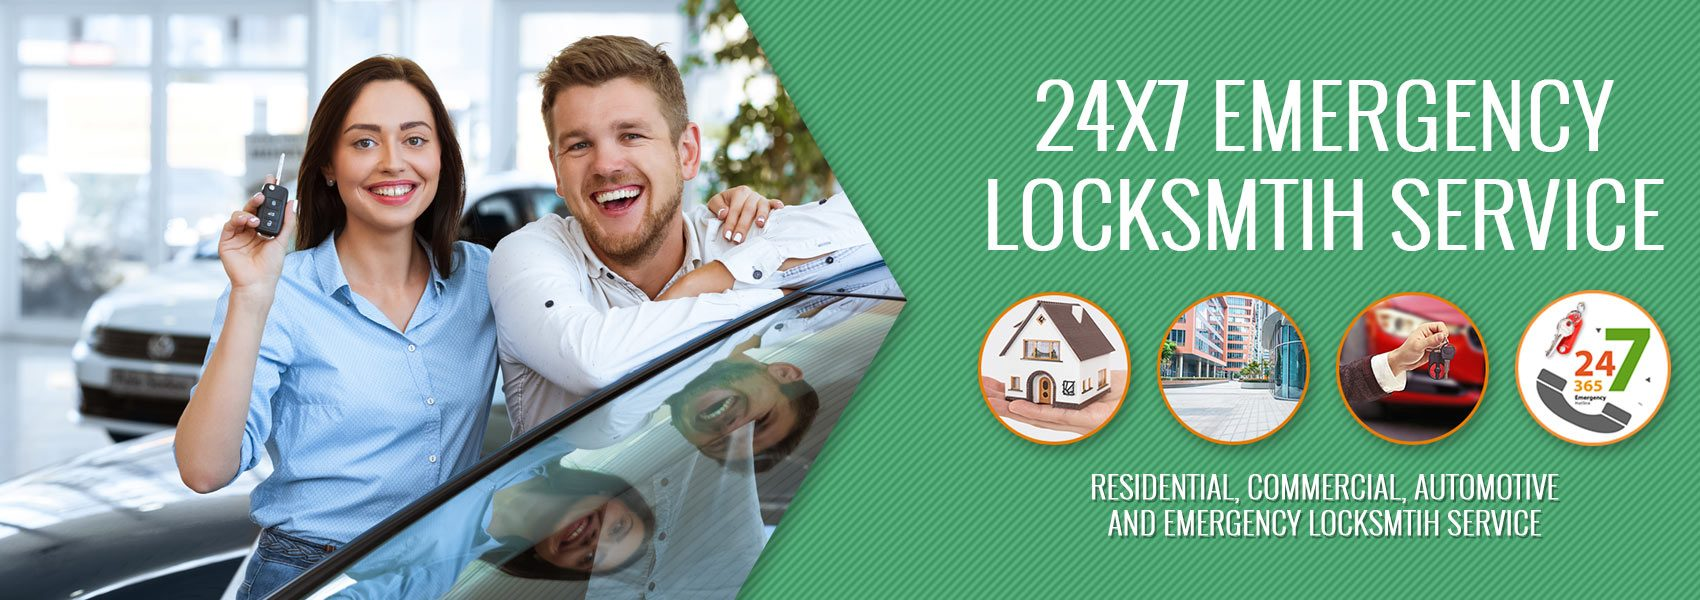 Amber Locksmith Store Clearwater, FL 727-807-2227